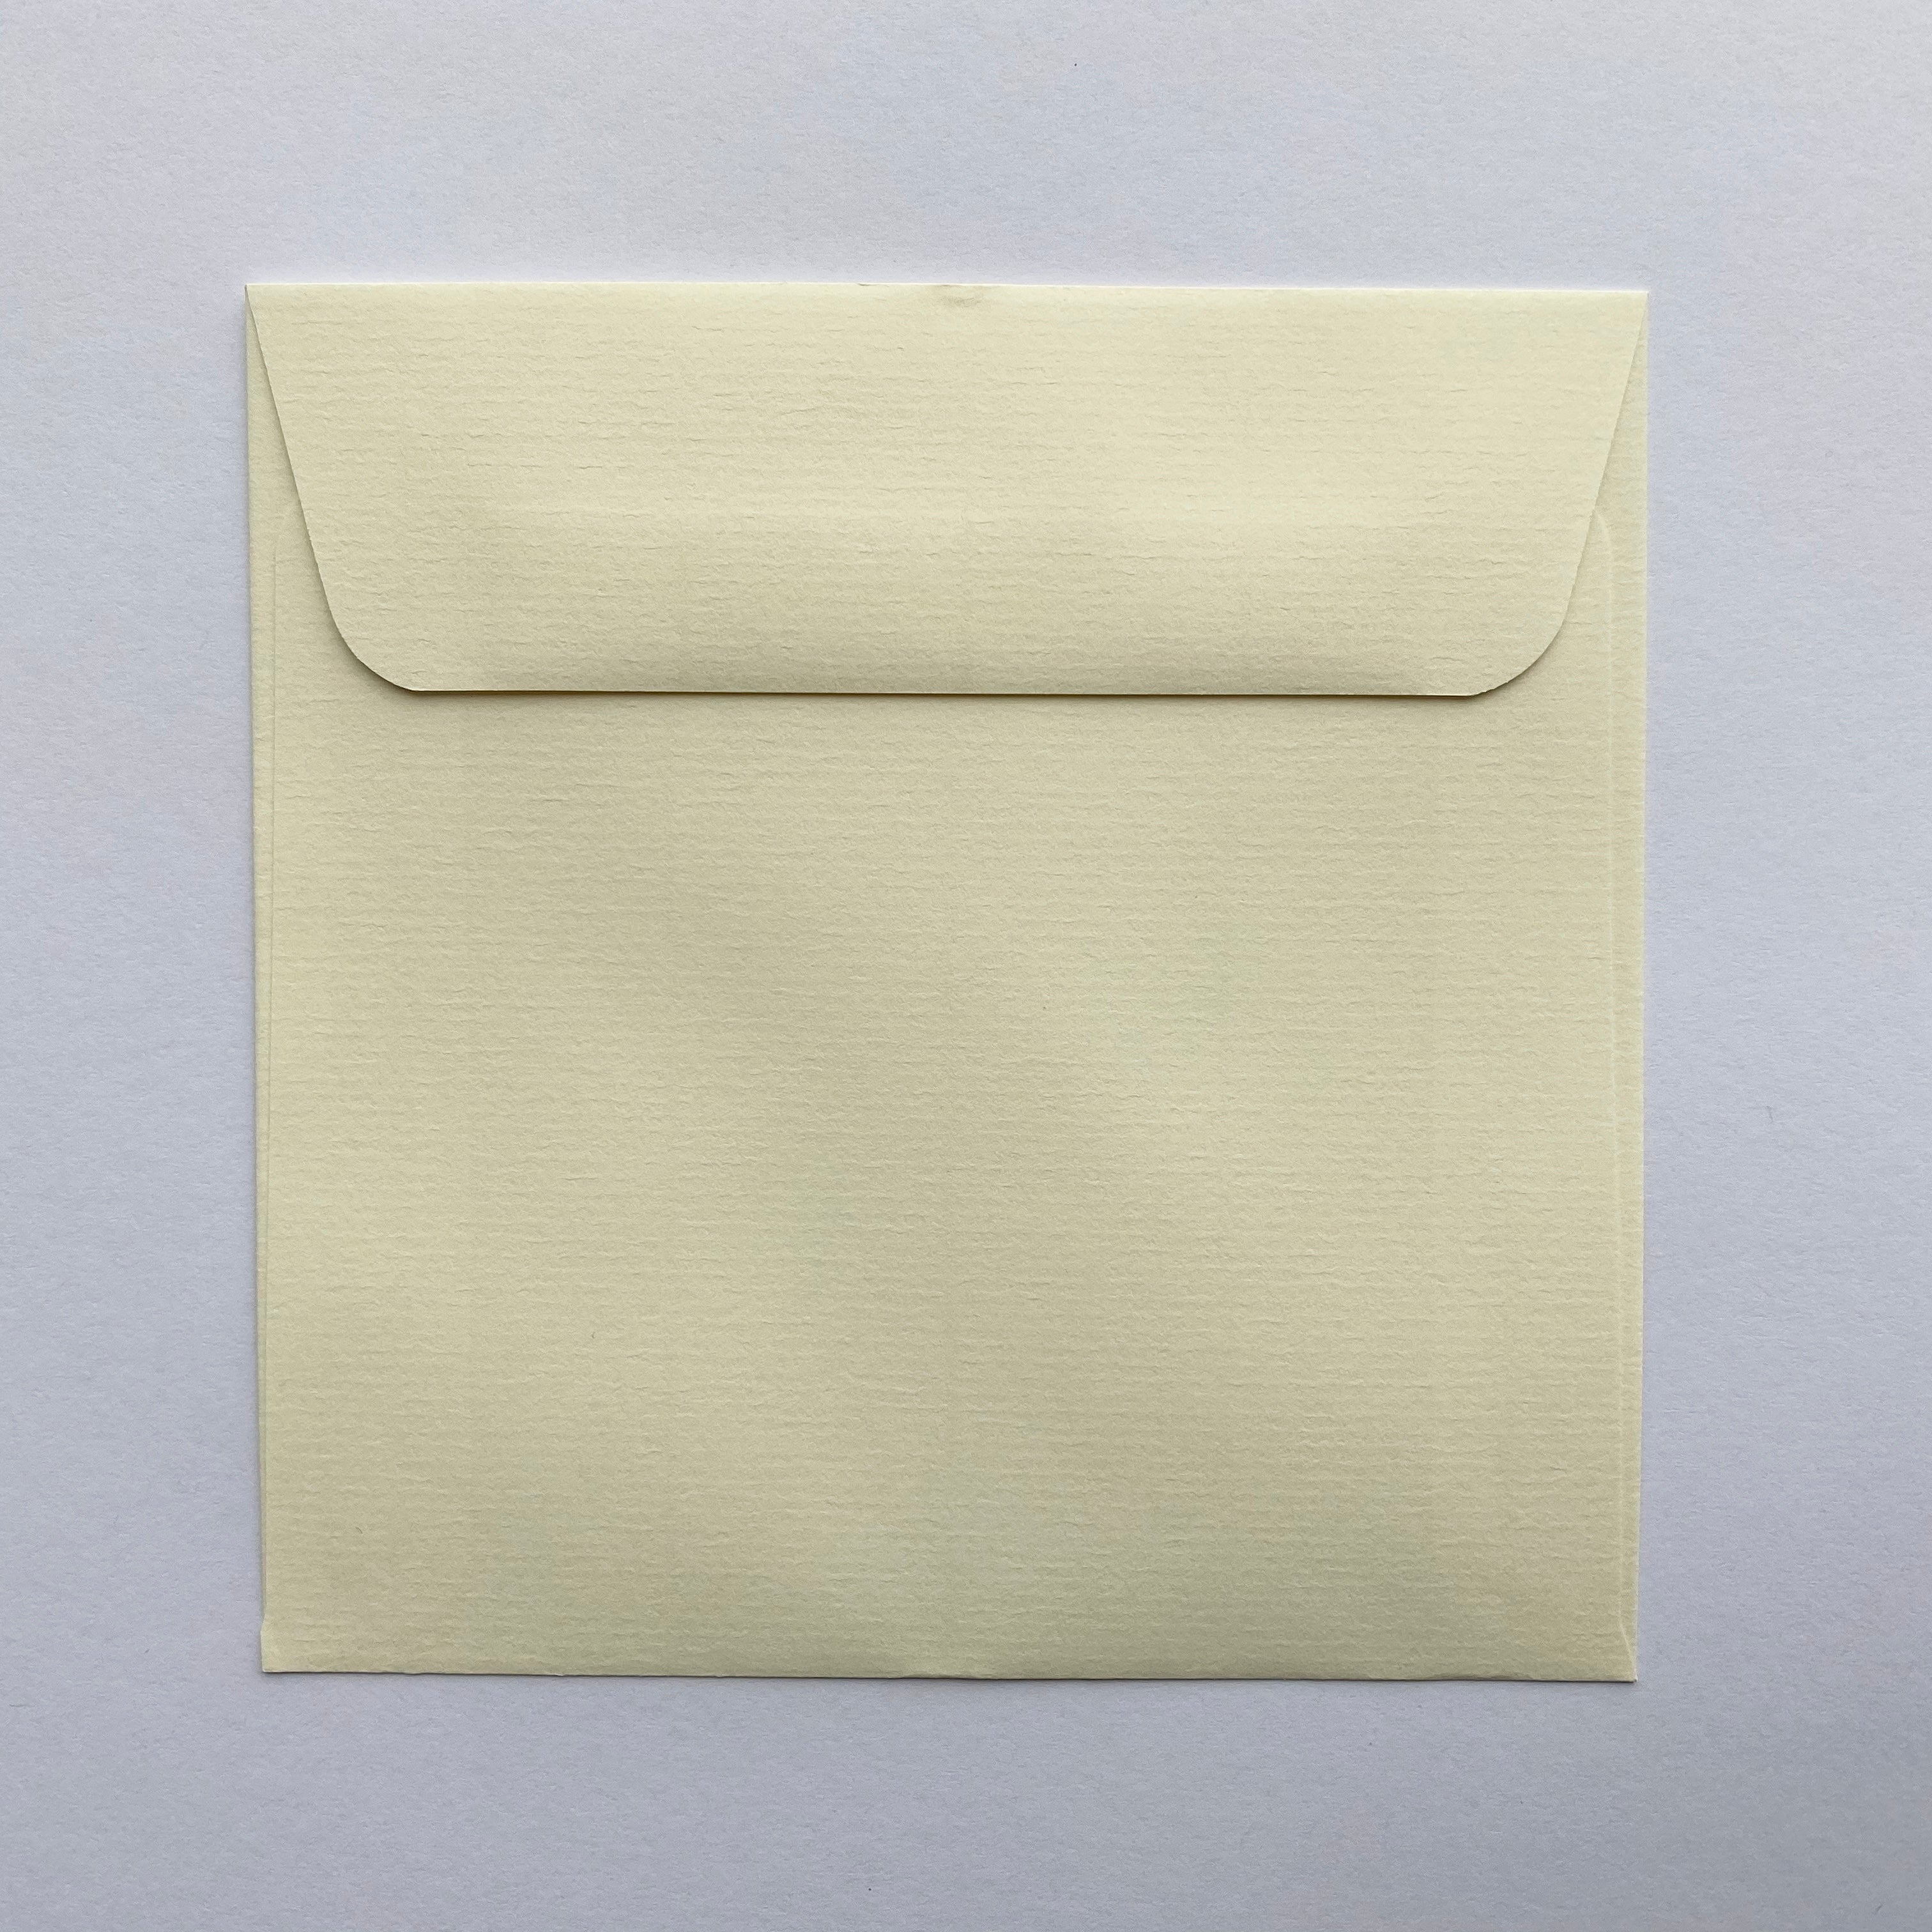 120mm square clearance envelopes